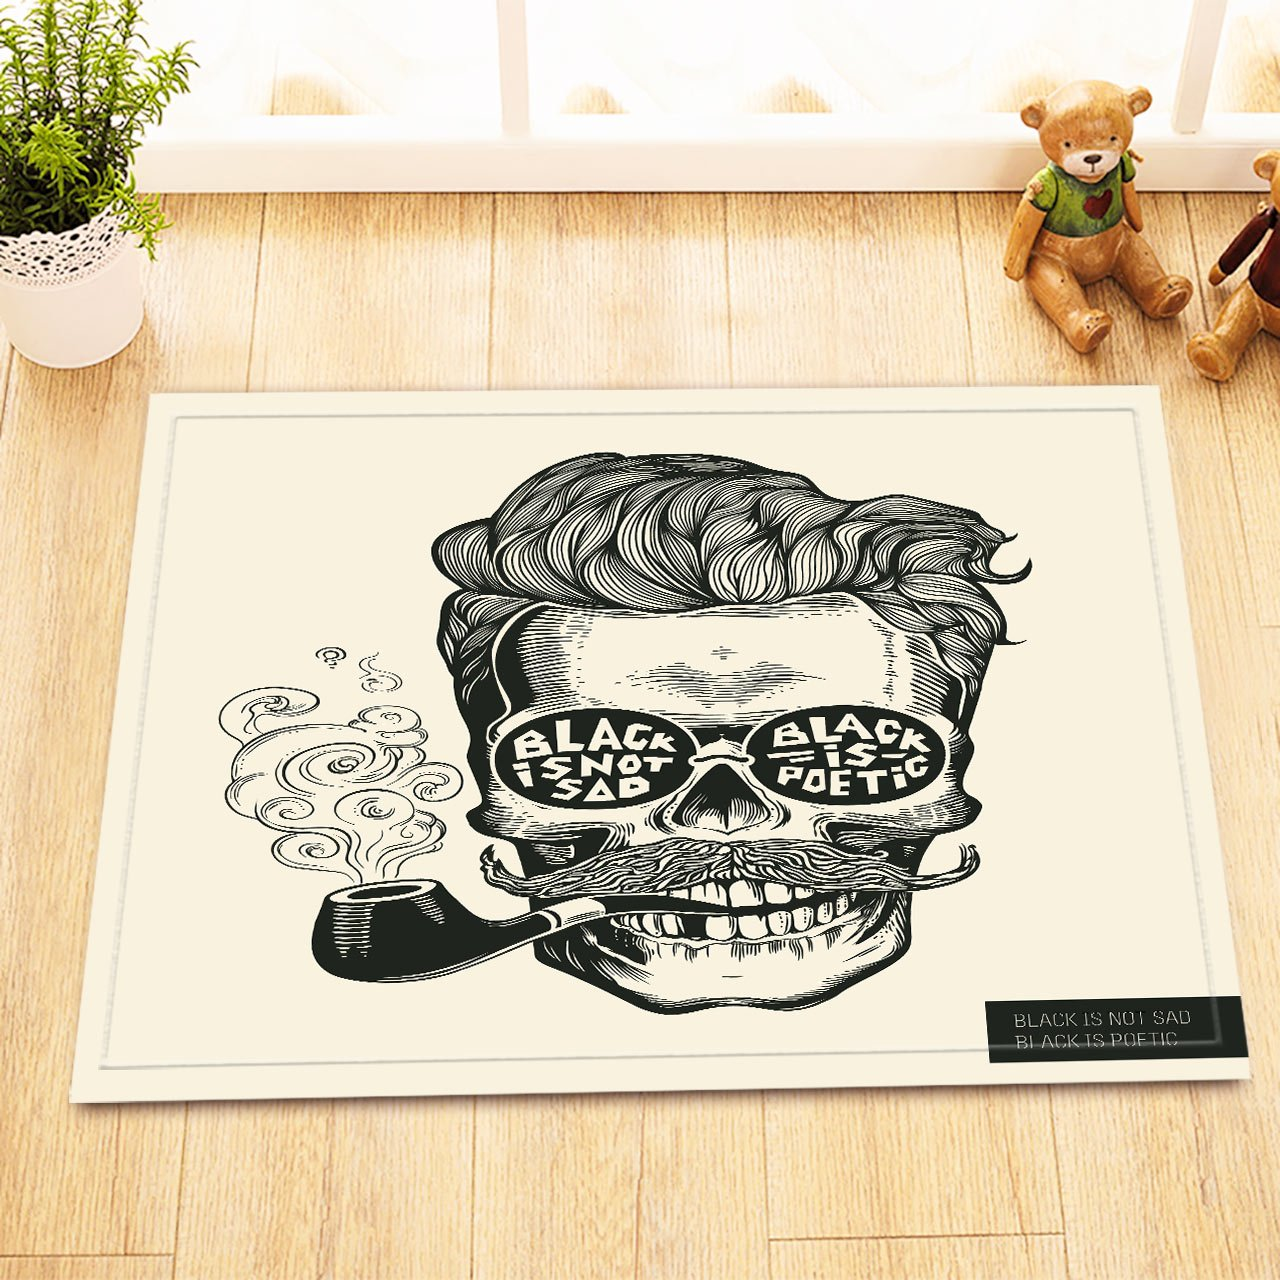 LB Vintage Skull Tobacco Pipe Inspiring Quote Bathroom Decorations Rugs, Safe Non Slip Backing Comfortable Soft Surface, Hipster Design Skull Theme Decorations 15 x 23 Inches